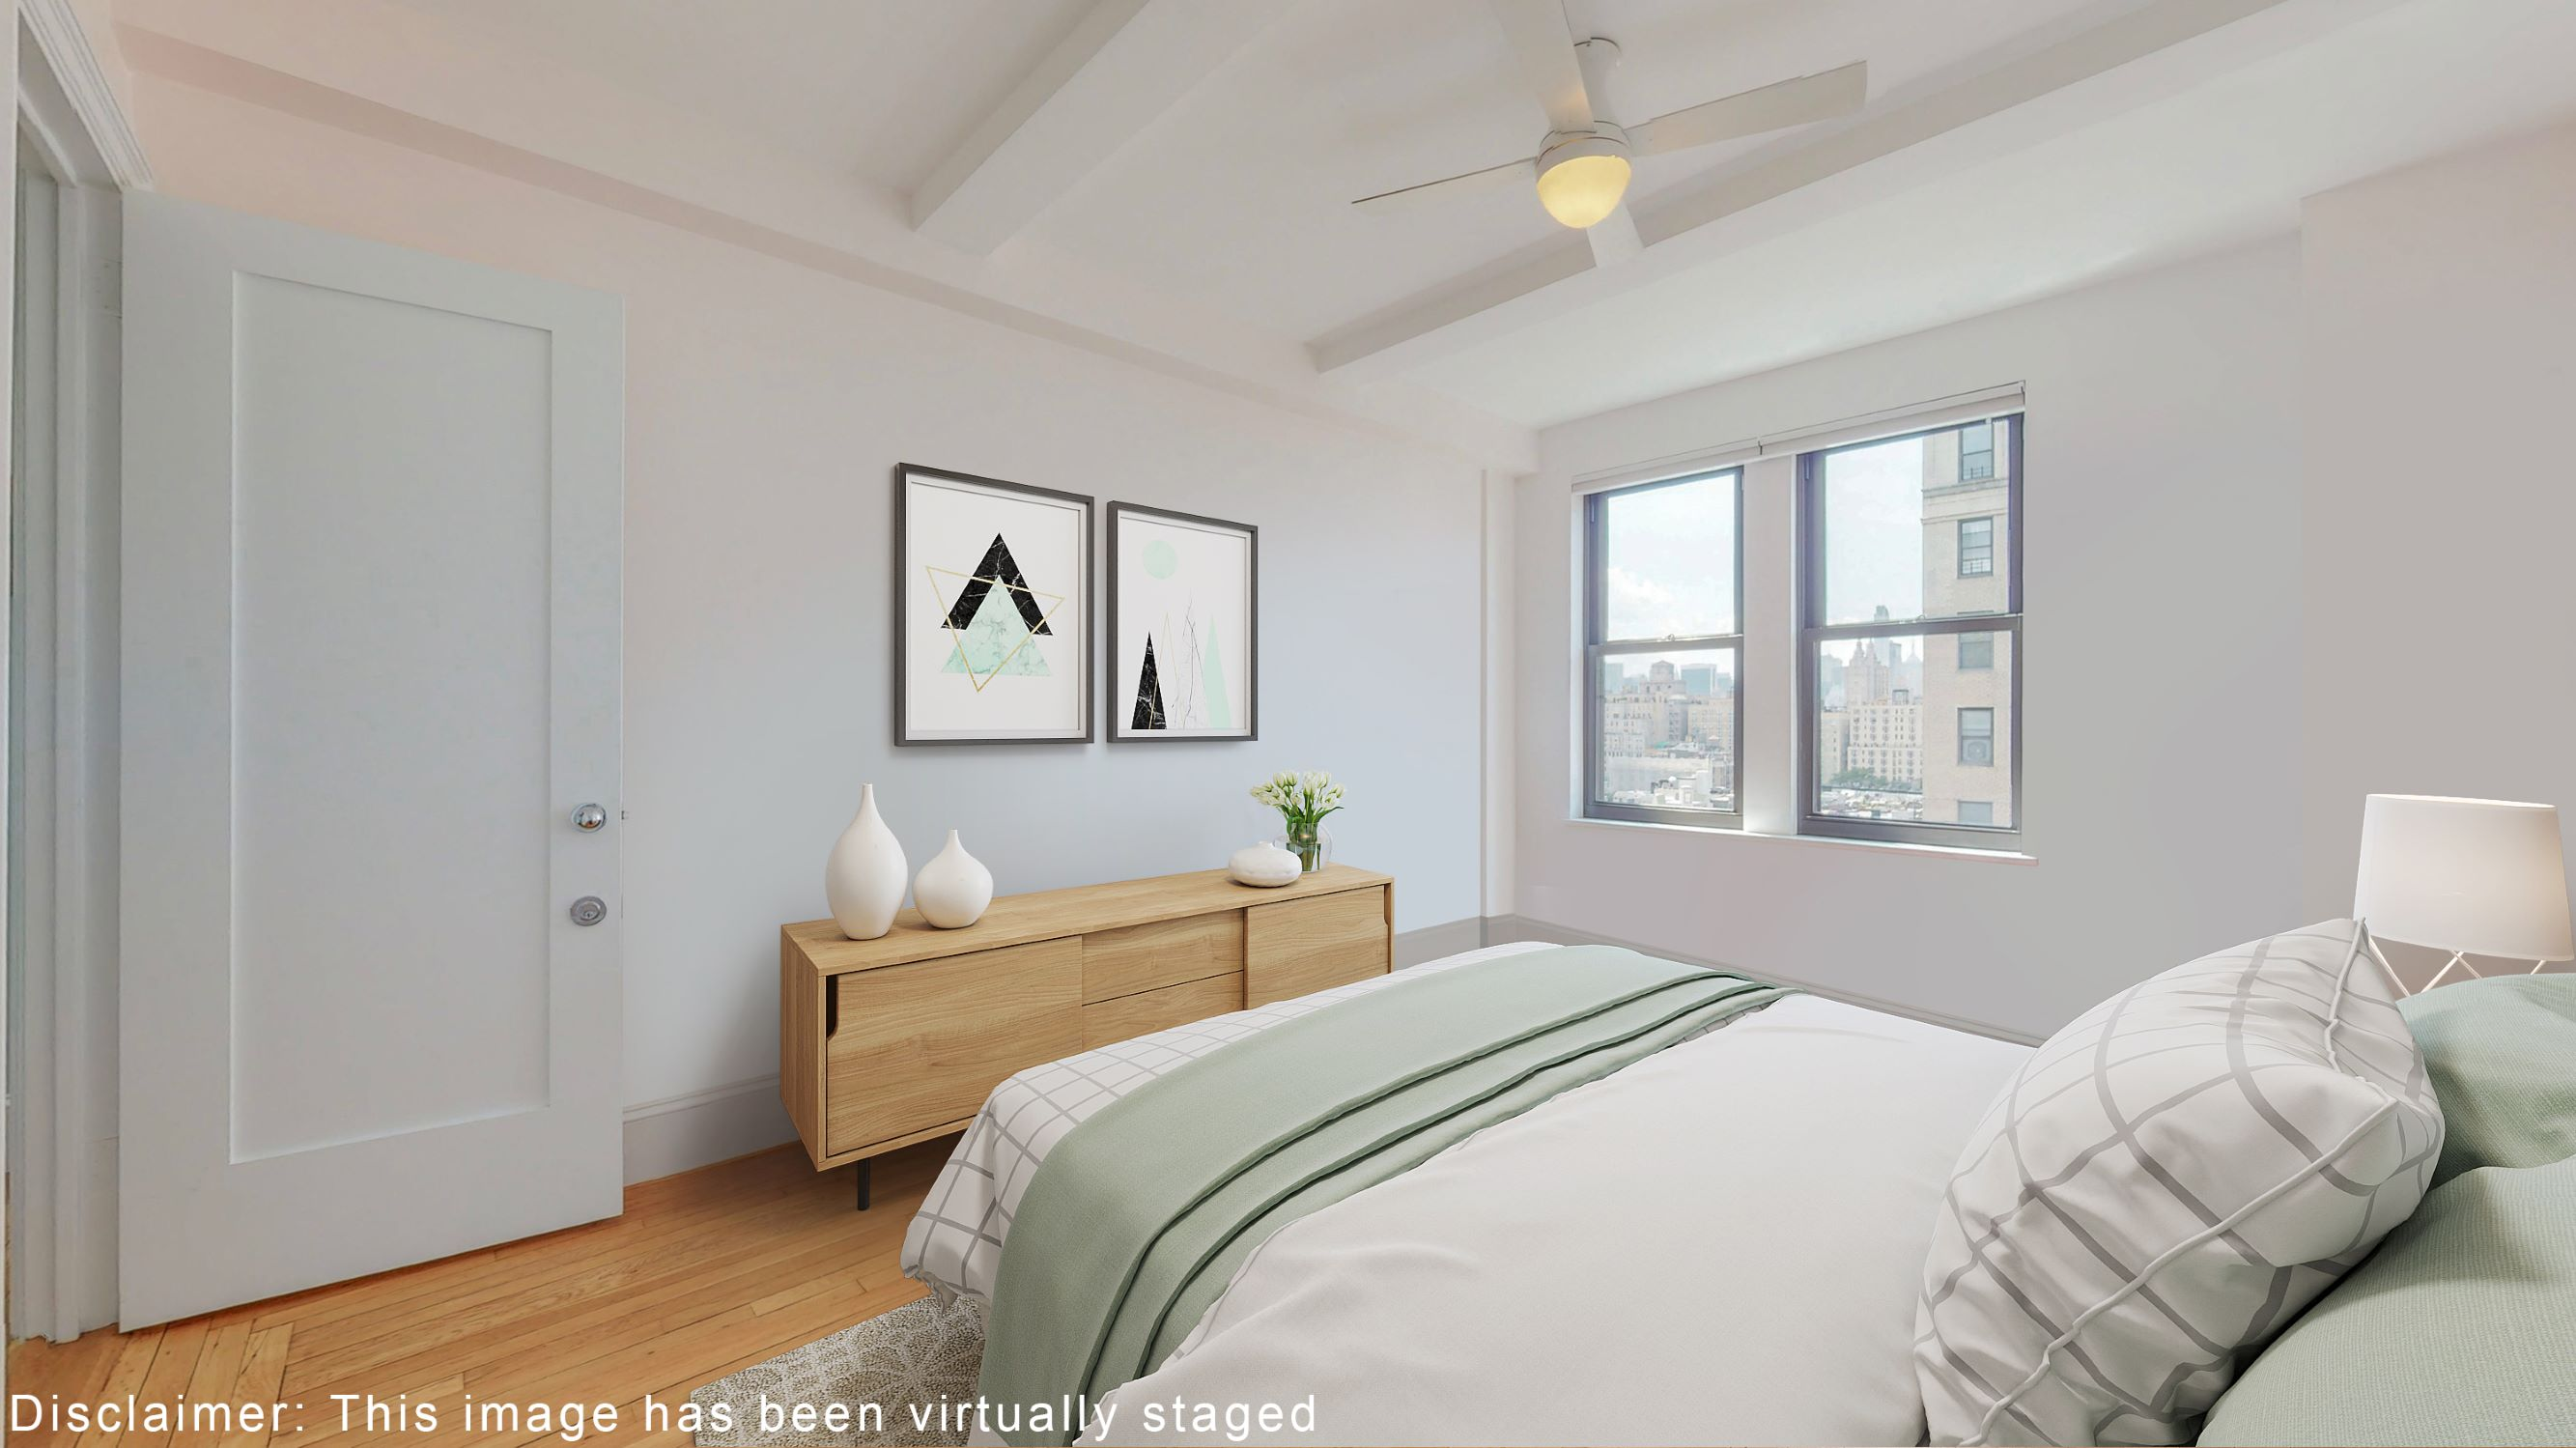 107 West 86th Street, New York, New York, New York, United States 10024, 2 Bedrooms Bedrooms, ,1.5 BathroomsBathrooms,Co-op,FOR SALE,West 86th Street,1134